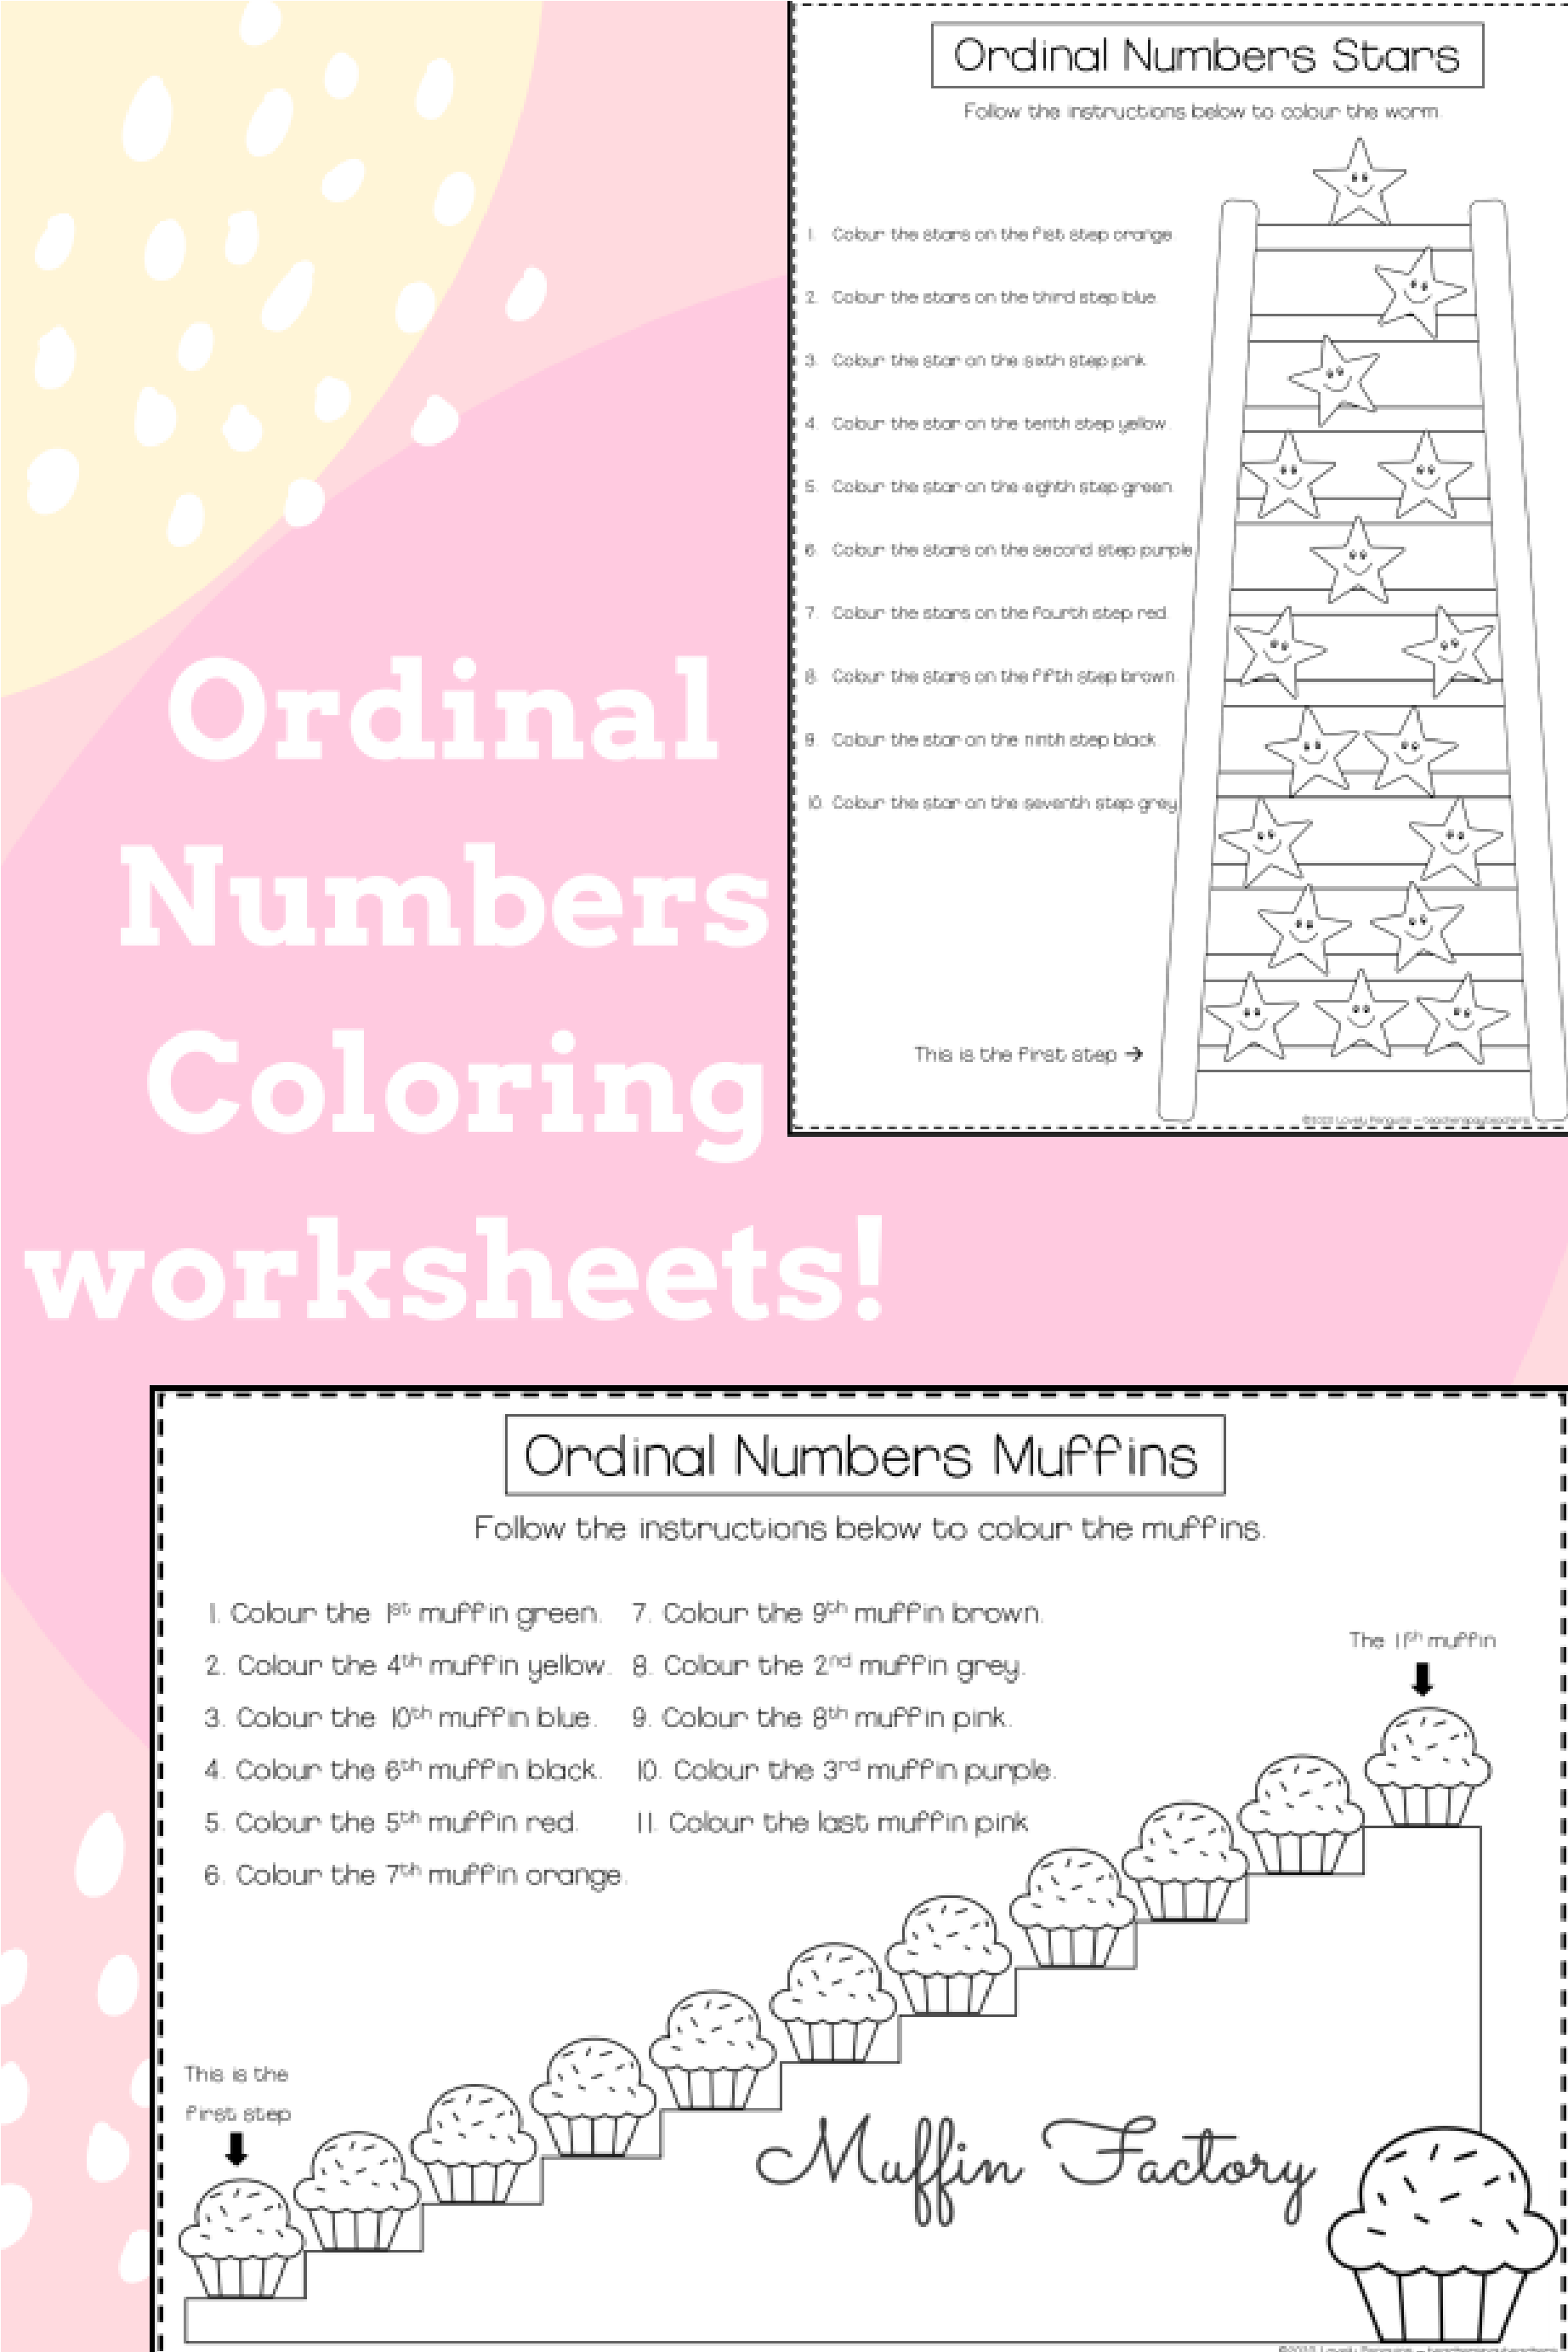 Ordinal Numbers Coloring Worksheets In